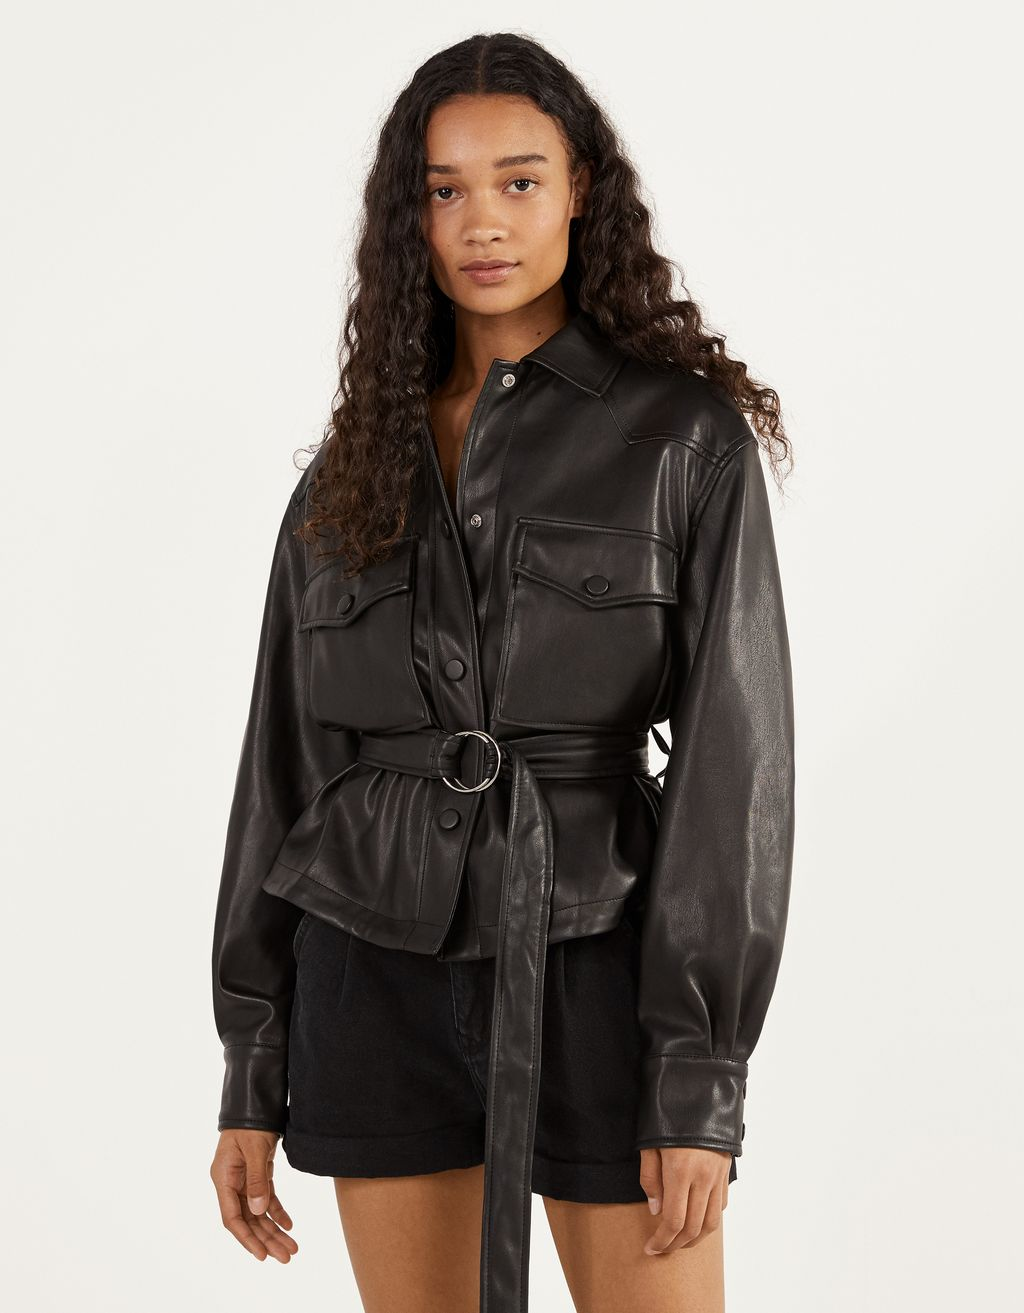 Faux leather overshirt with a belt